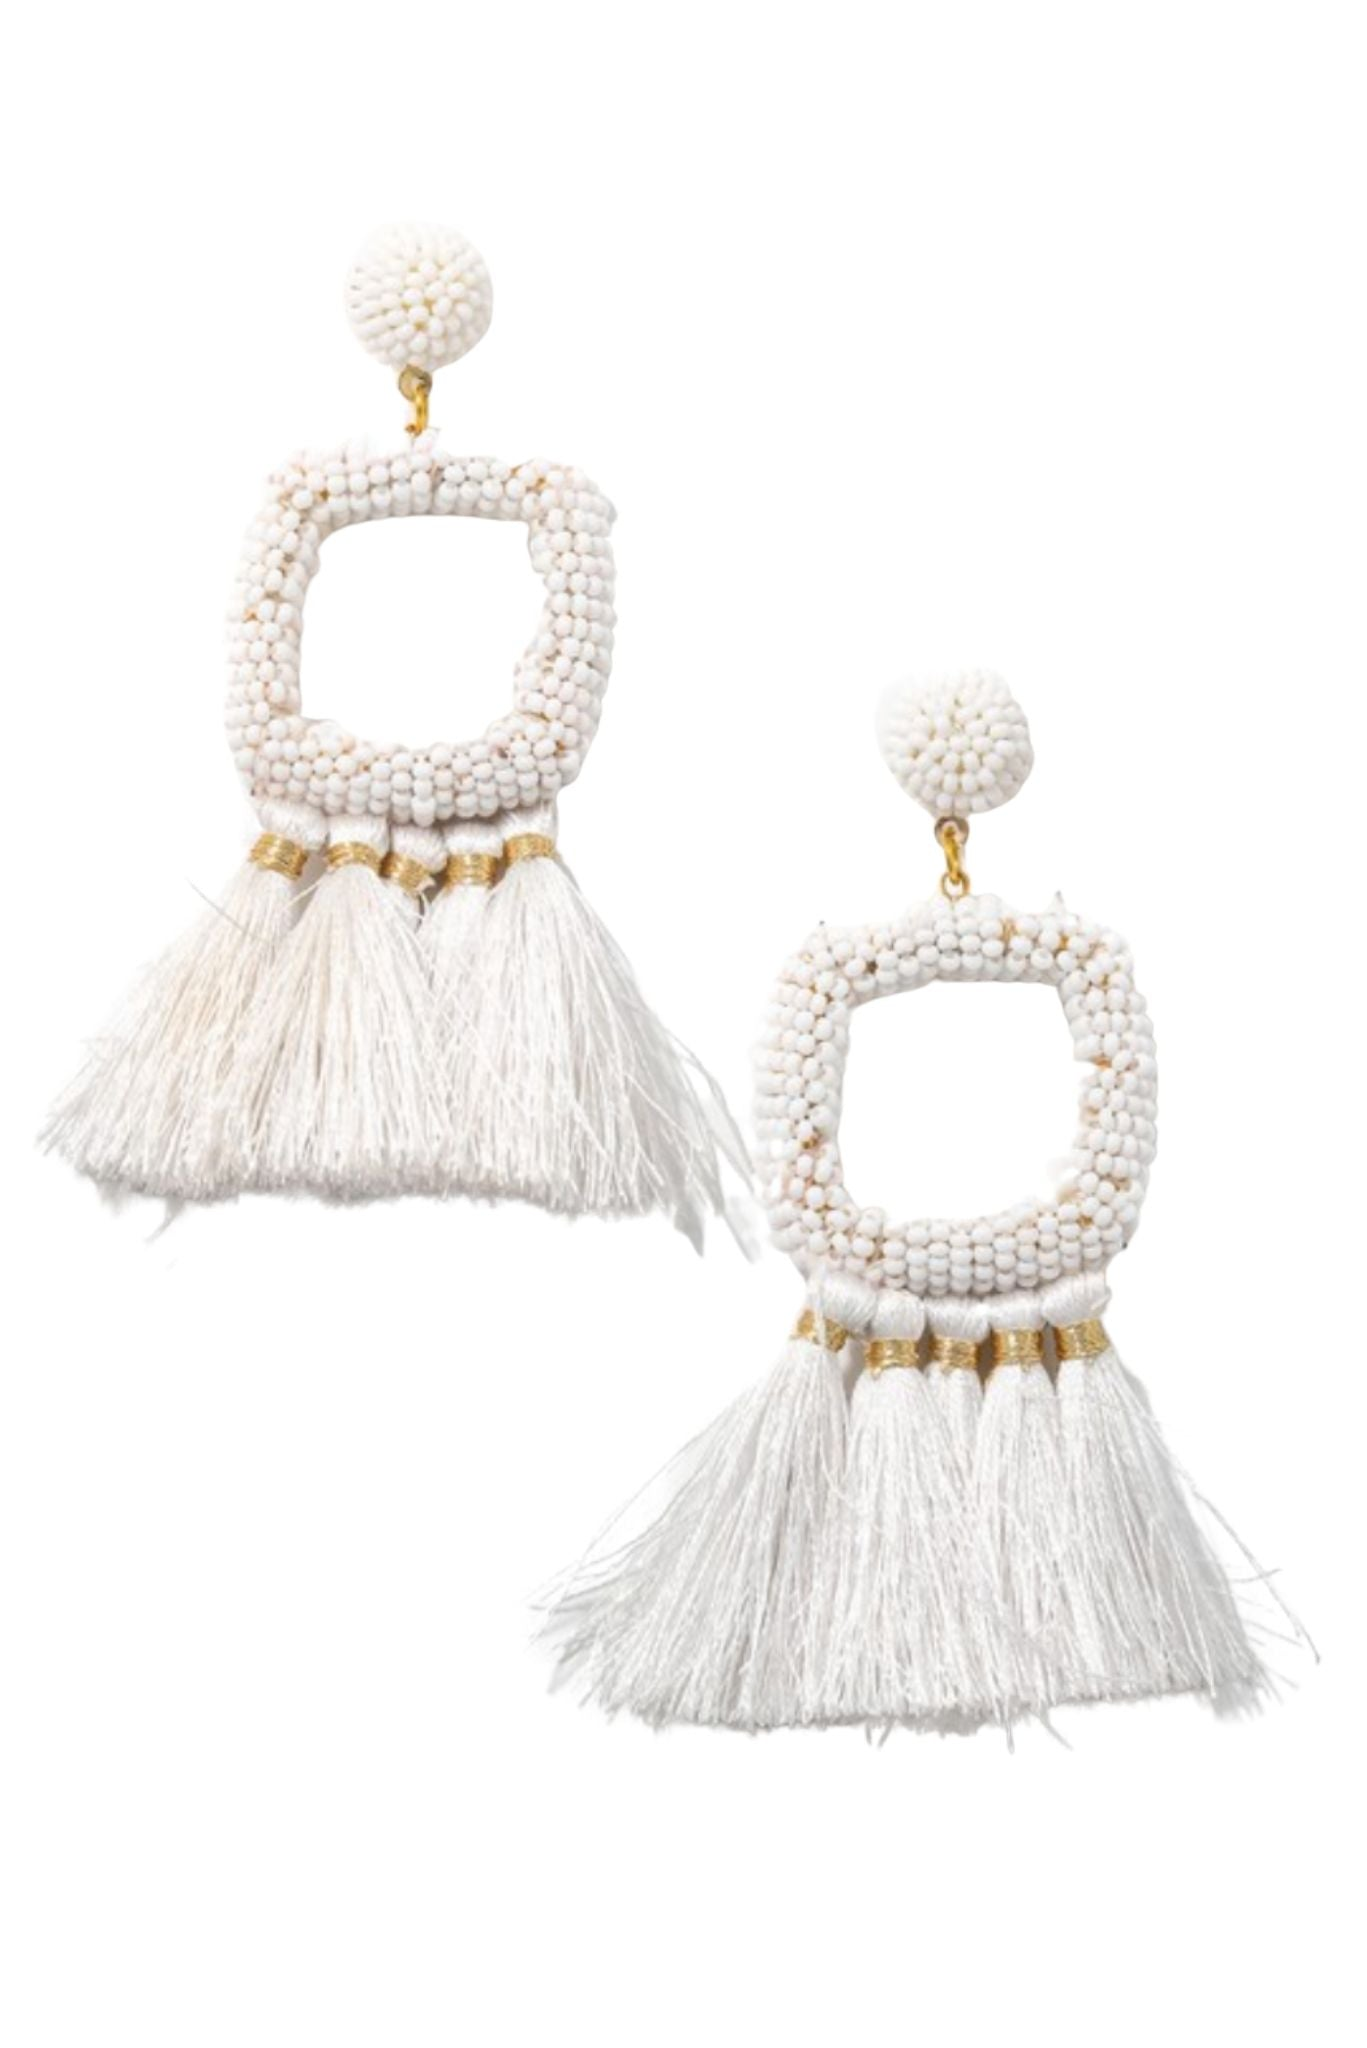 White Beaded Square Earrings w/ Fringe